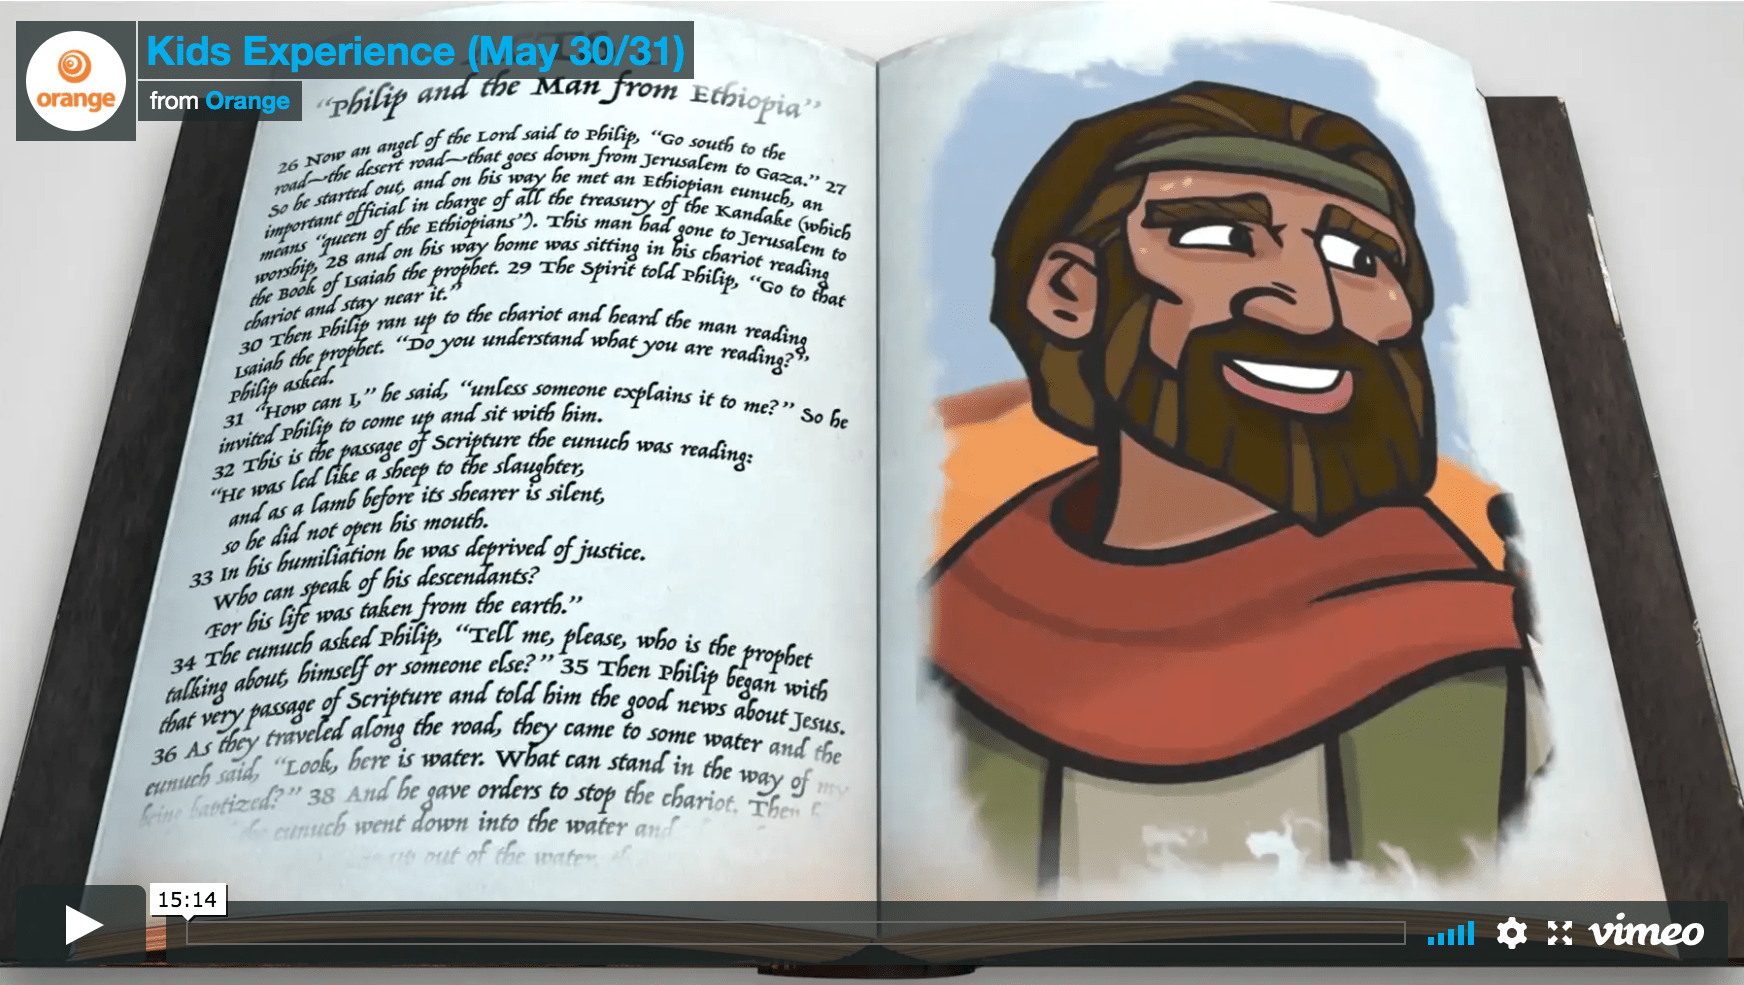 Weekly Bible Studies: Kids Experience